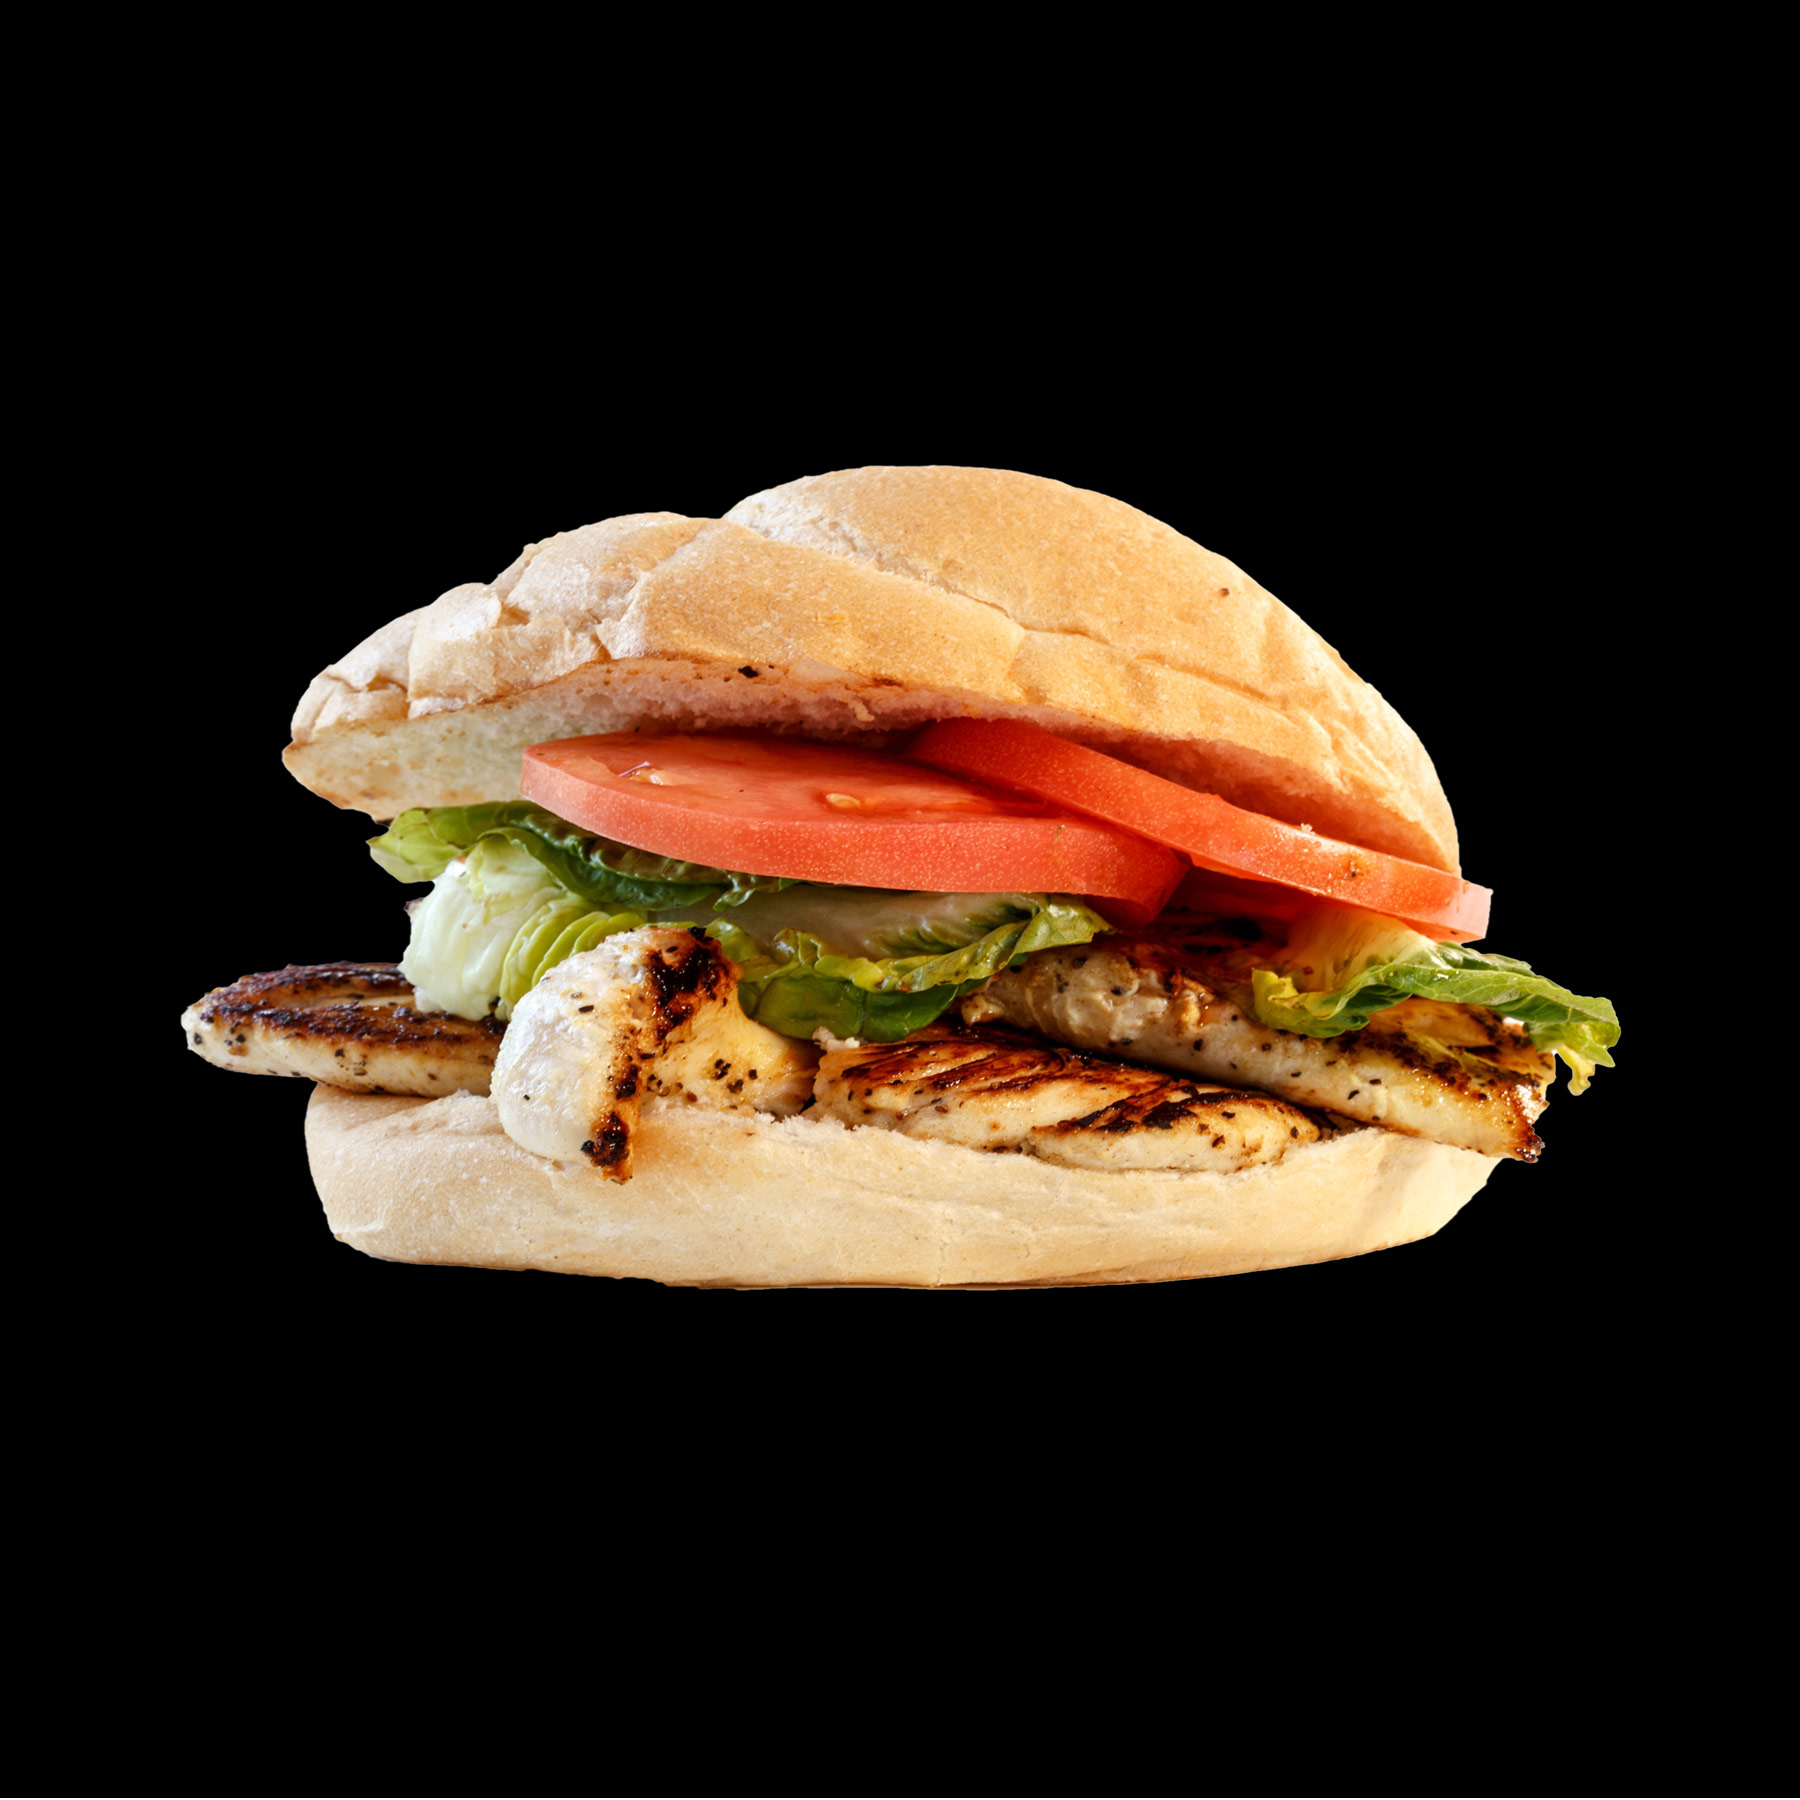 Chicken Sandwich Grilled or fried premium chicken breast, dressed with lettuce, tomato, and onion on a fresh brioche bun. Served with your choice of steak fries, french fries, onion rings, chips, or Texas Toothpicks. 9.00